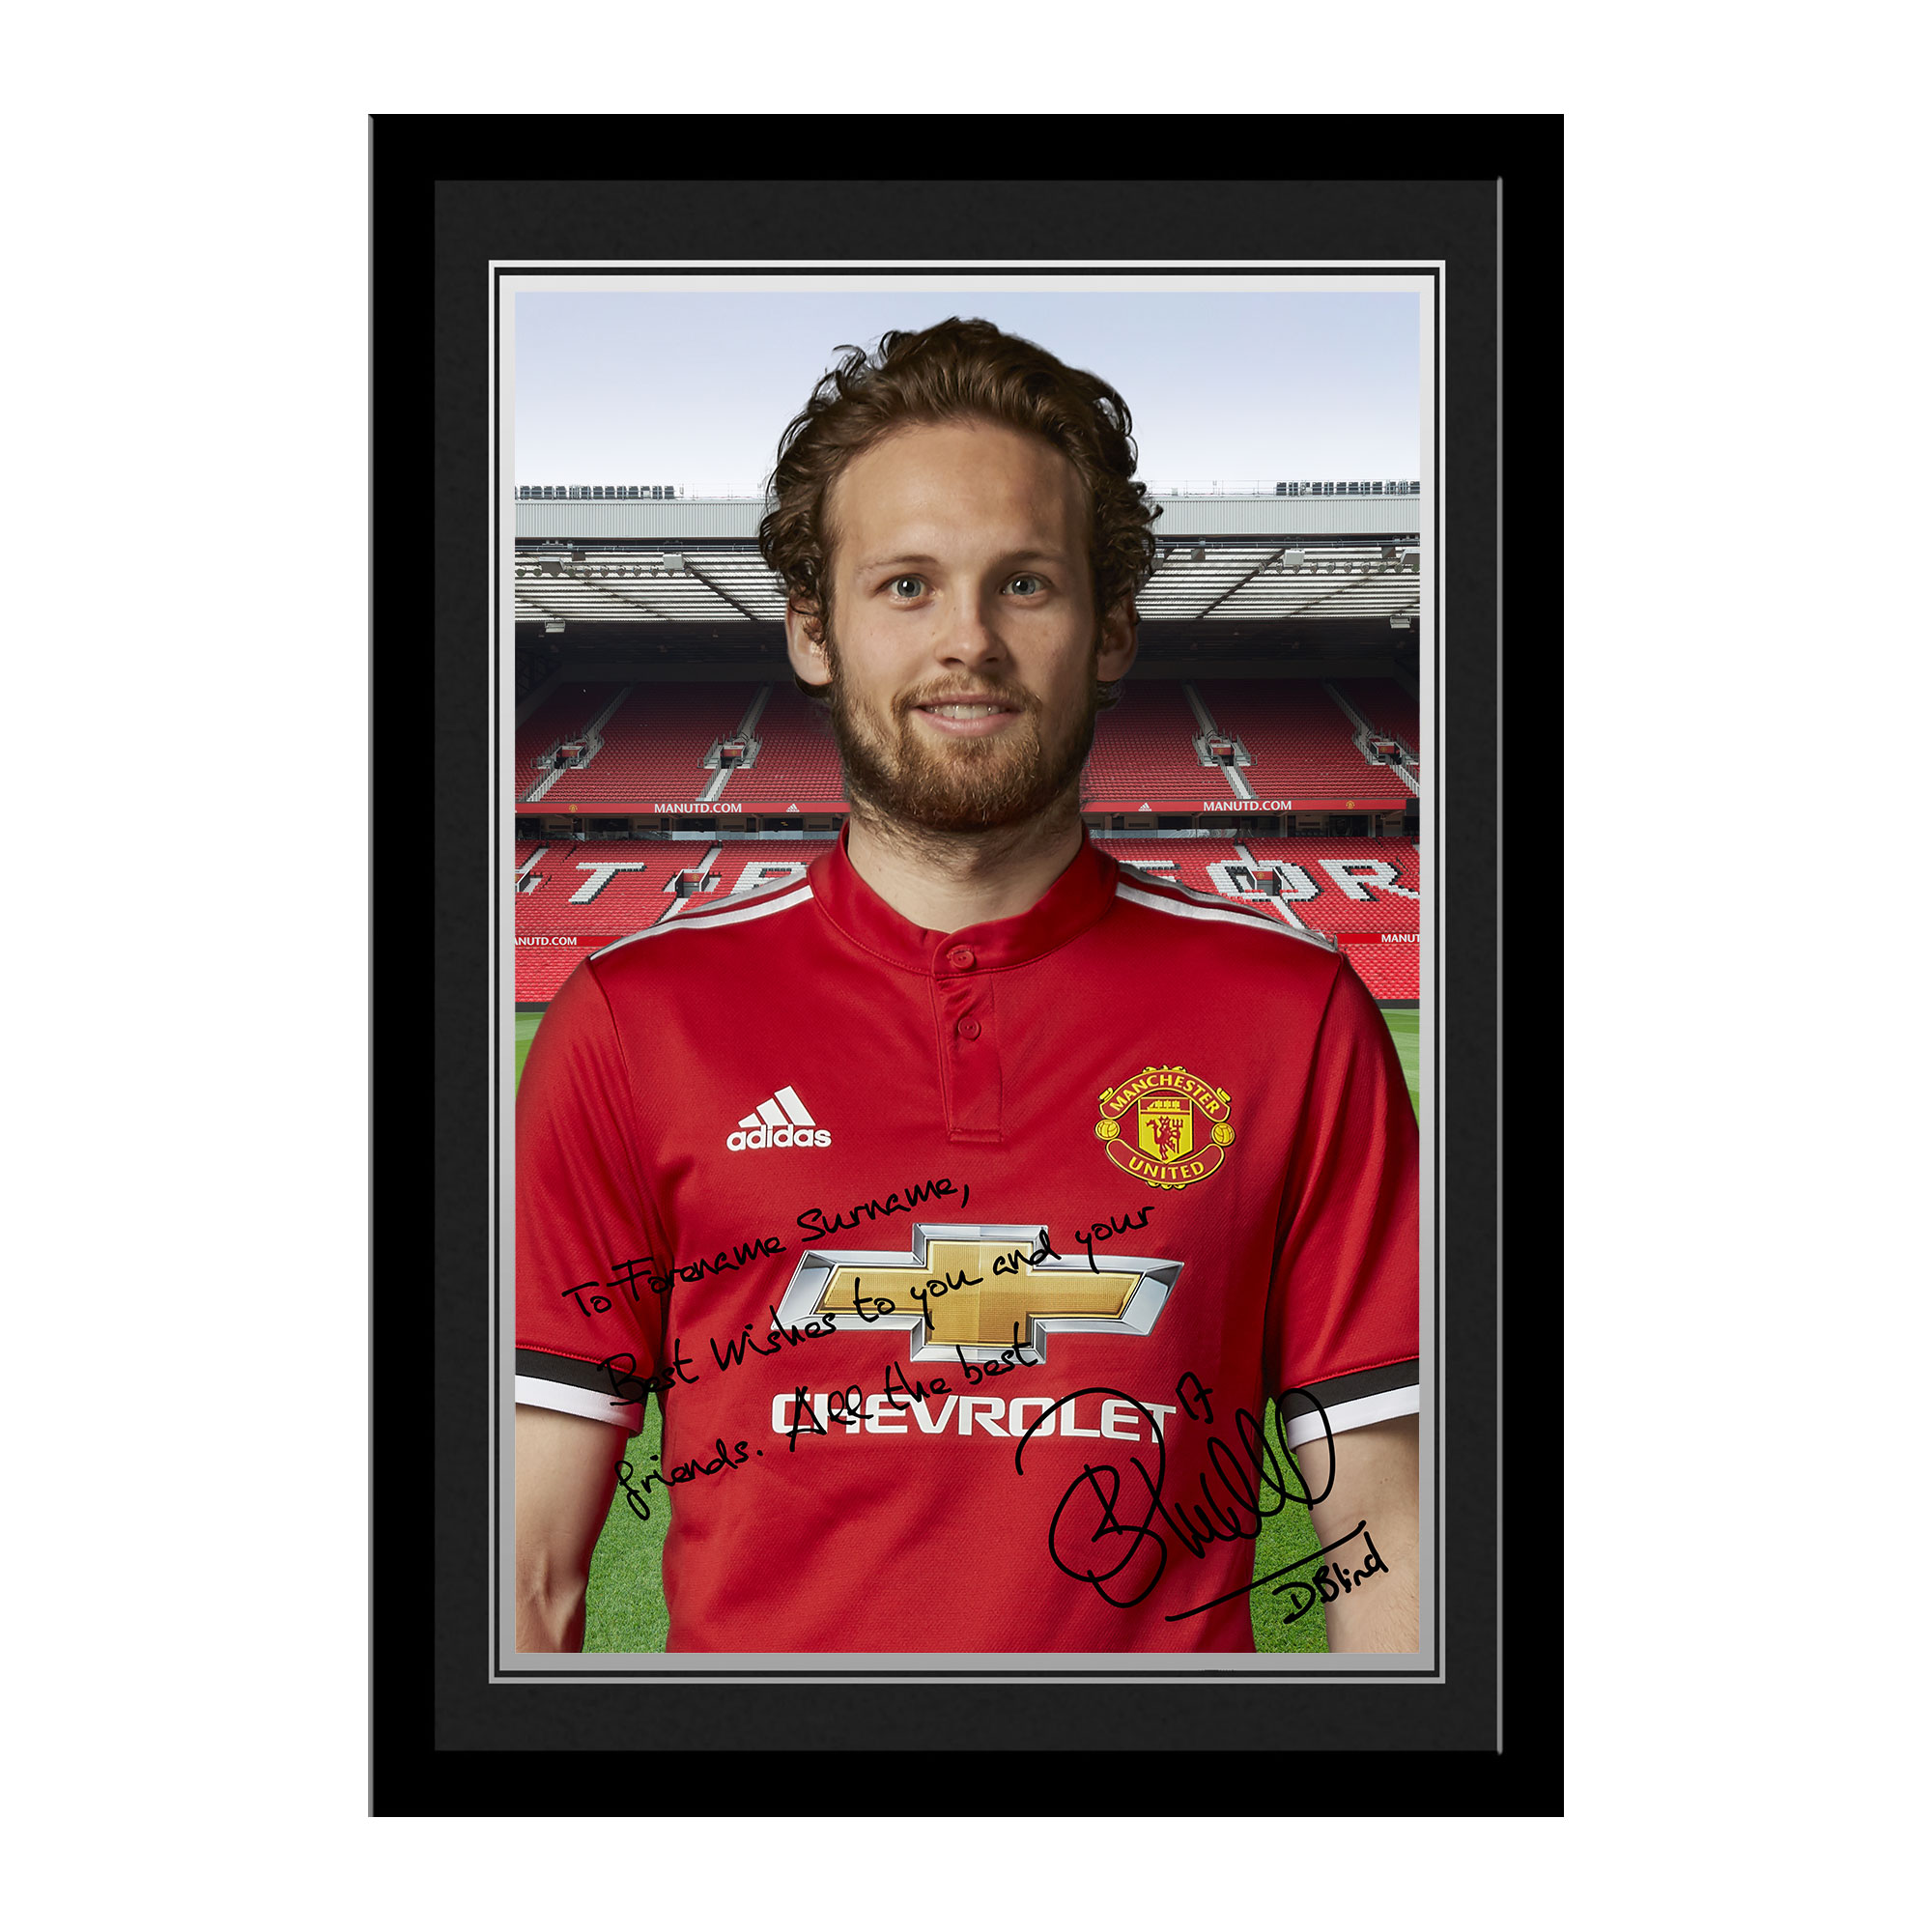 Manchester United FC Blind Autograph Photo Framed